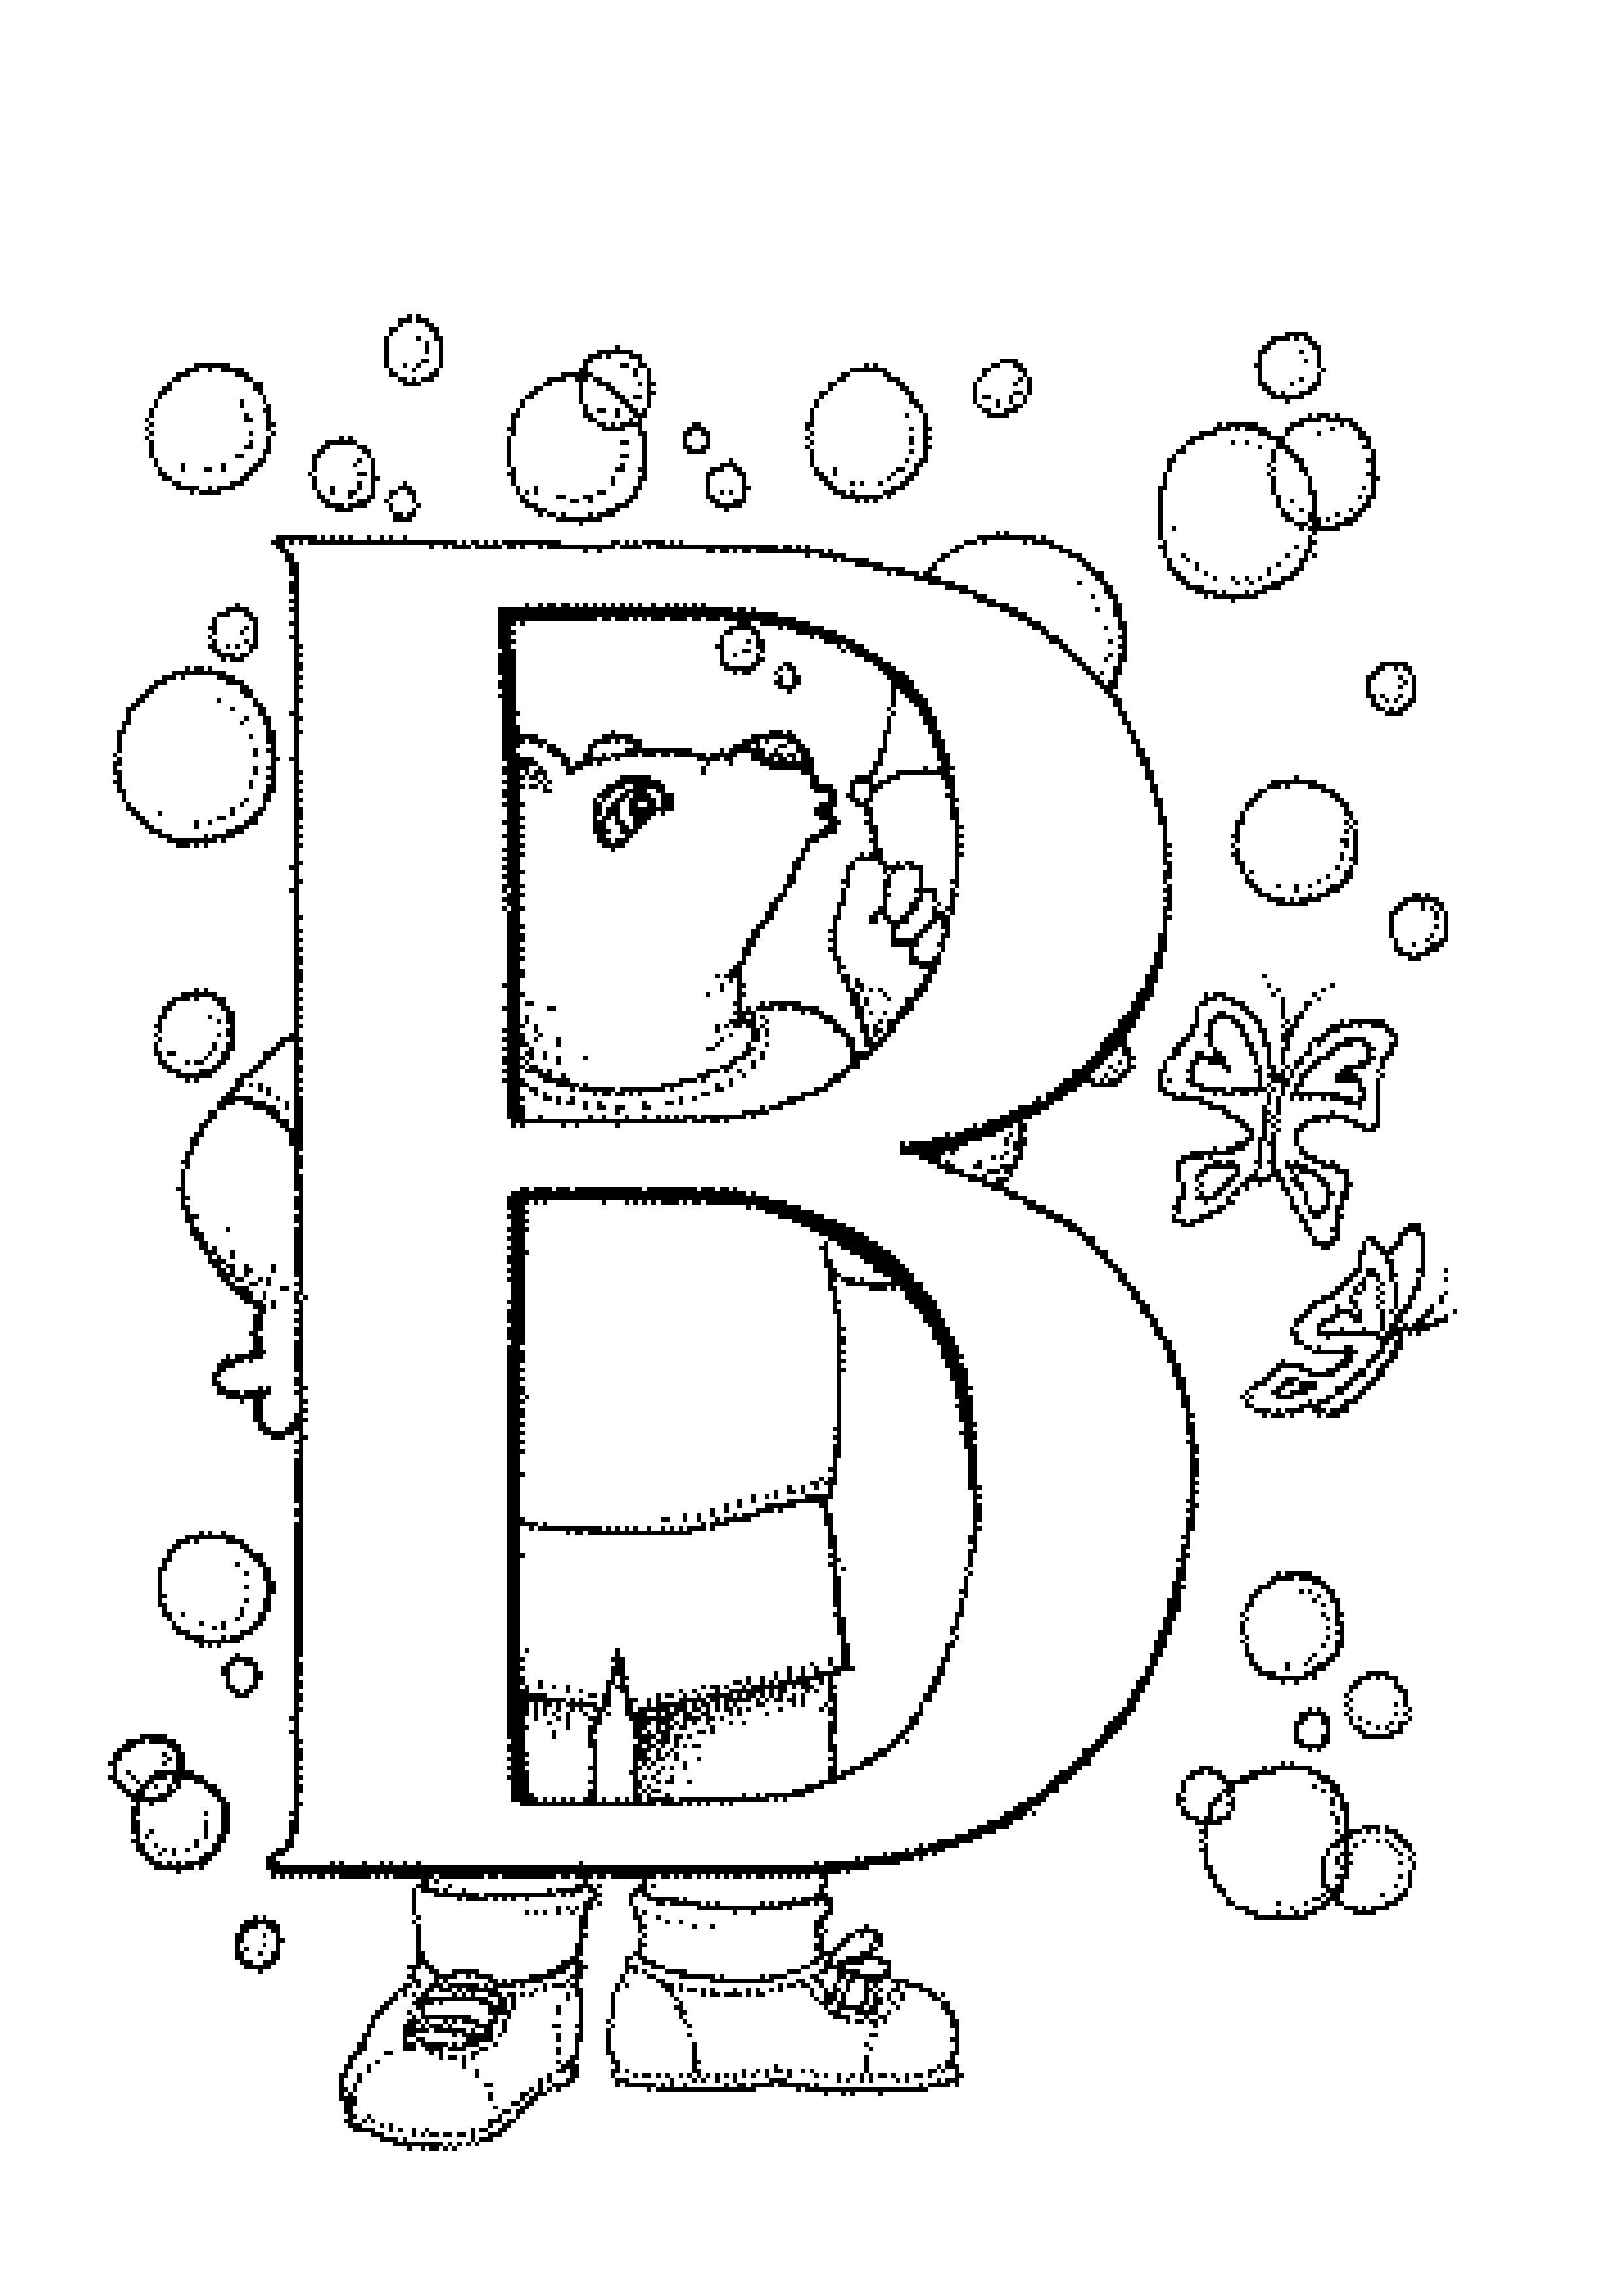 colouring pictures of alphabets quotcolor mequot alphabet poster classroom freebies of colouring alphabets pictures